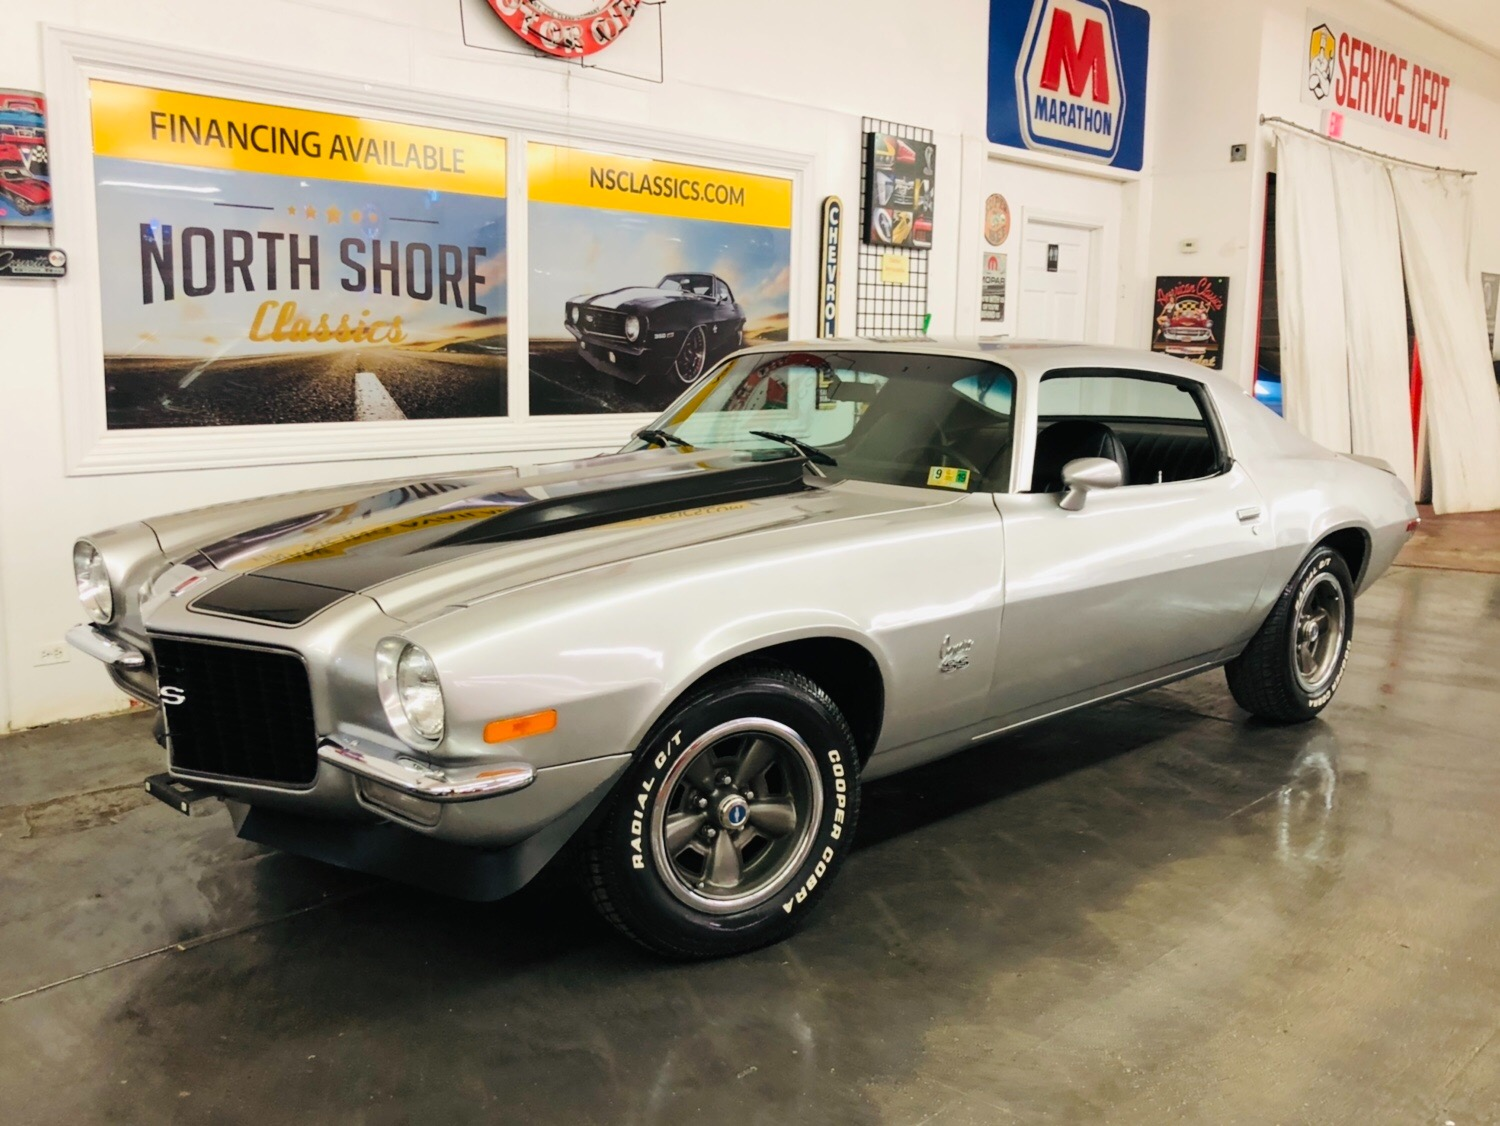 Used 1972 Chevrolet Camaro - SS TRIBUTE - 383 STROKER ENGINE - 700R4 TRANS - SEE VIDEO - | Mundelein, IL